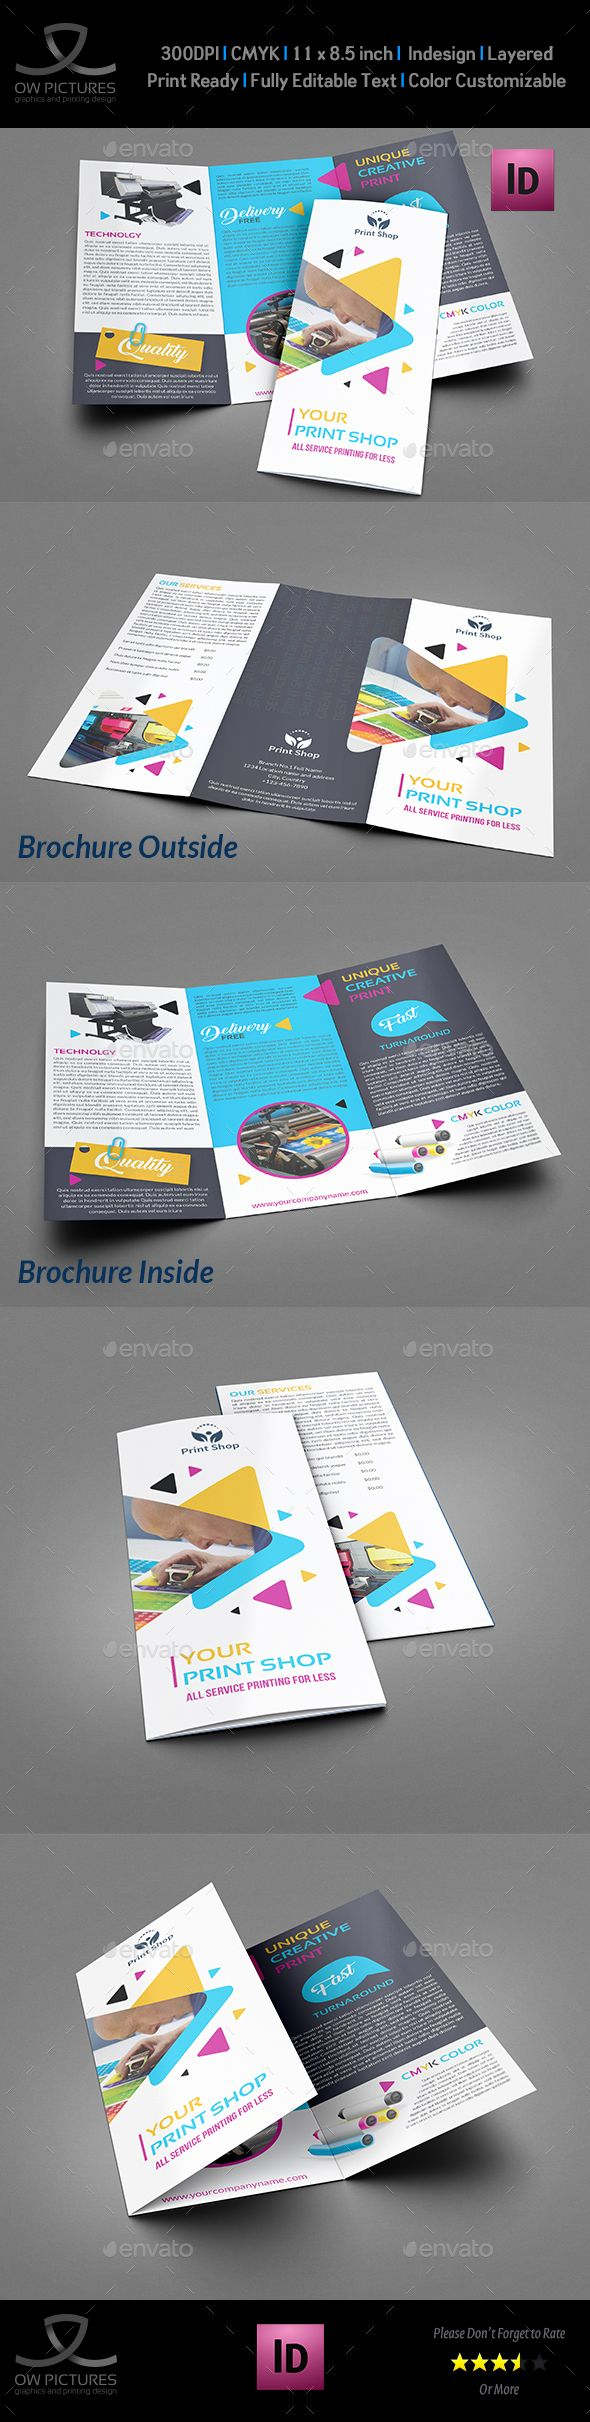 tri fold brochure template indesign free download